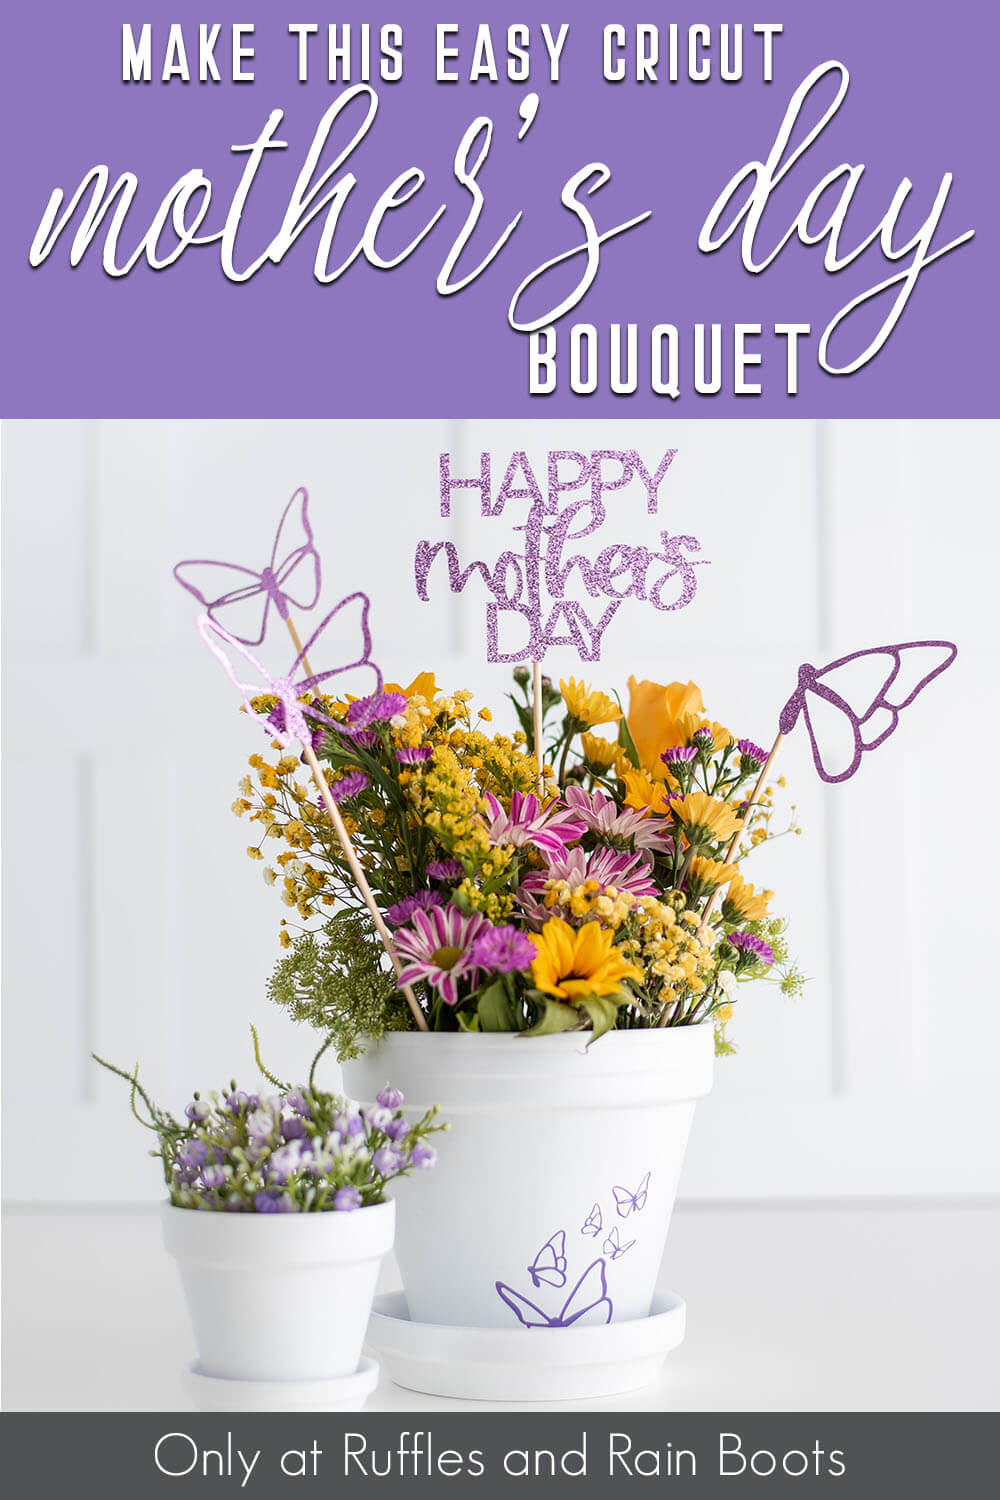 cricut flower pick for mother's day bouquet with text which reads make this easy cricut mother's day bouquet